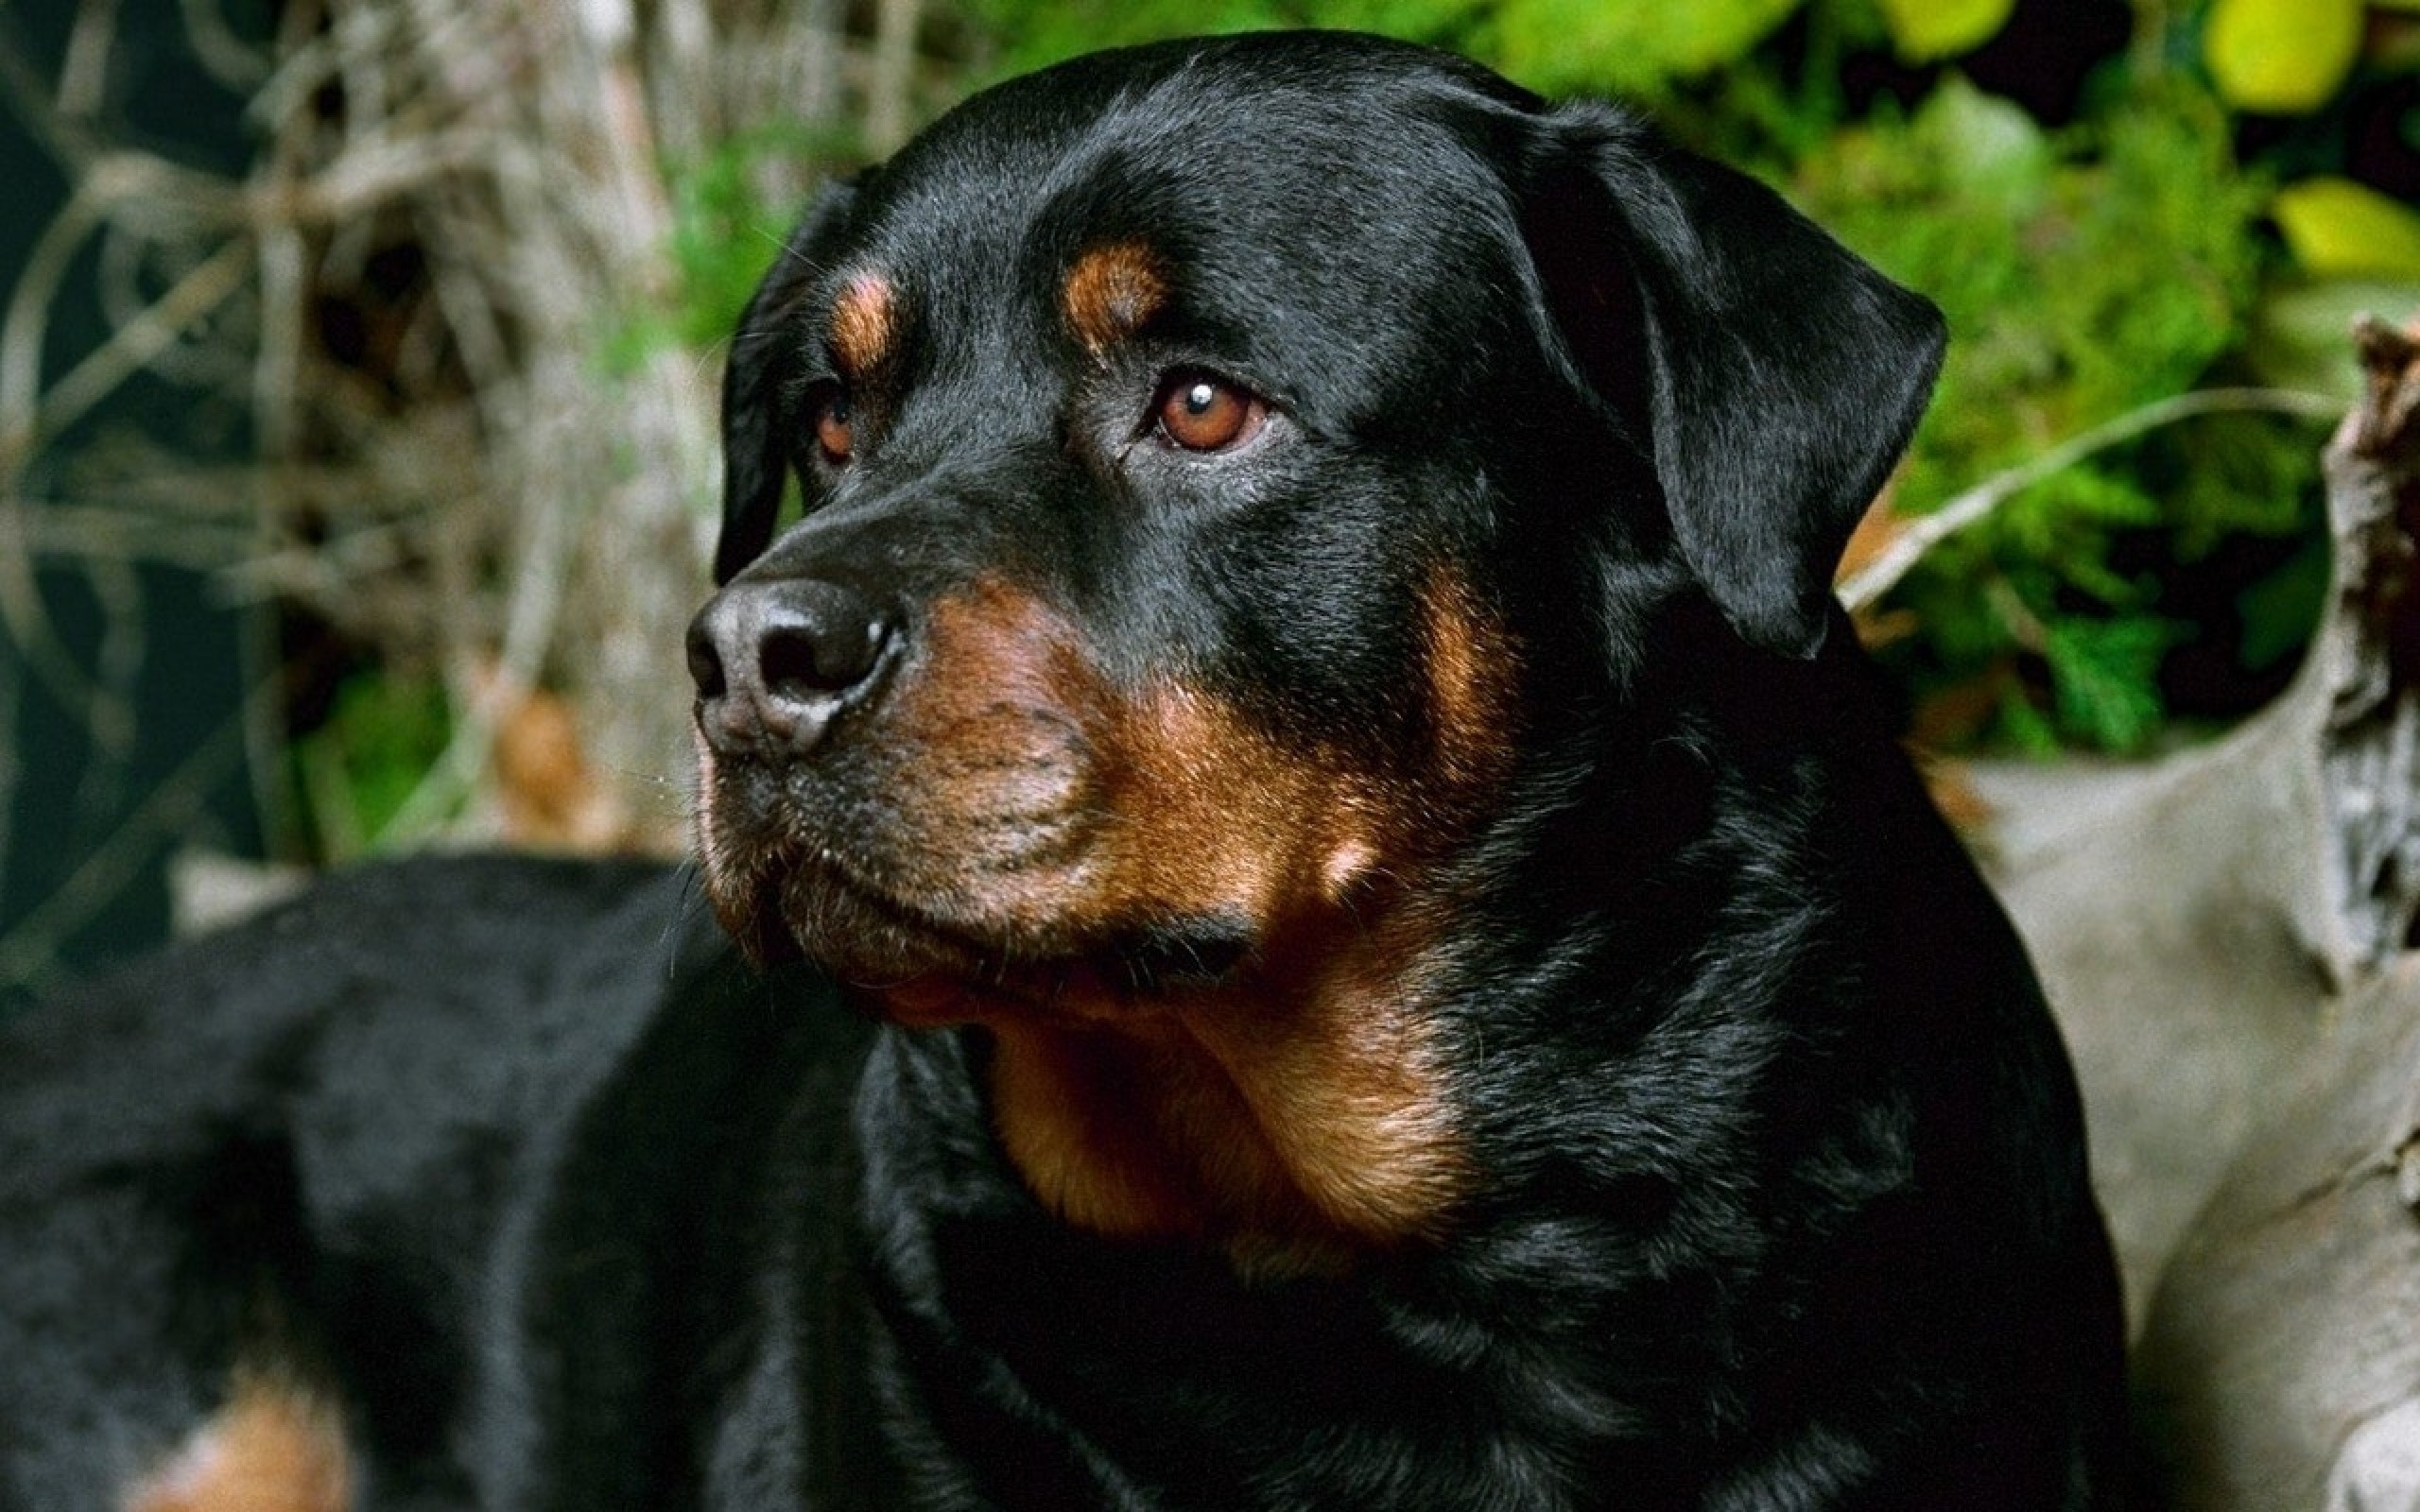 Hd Rottweiler Wallpapers And Photos High Resolution Rottweiler Hd 2560x1600 Download Hd Wallpaper Wallpapertip